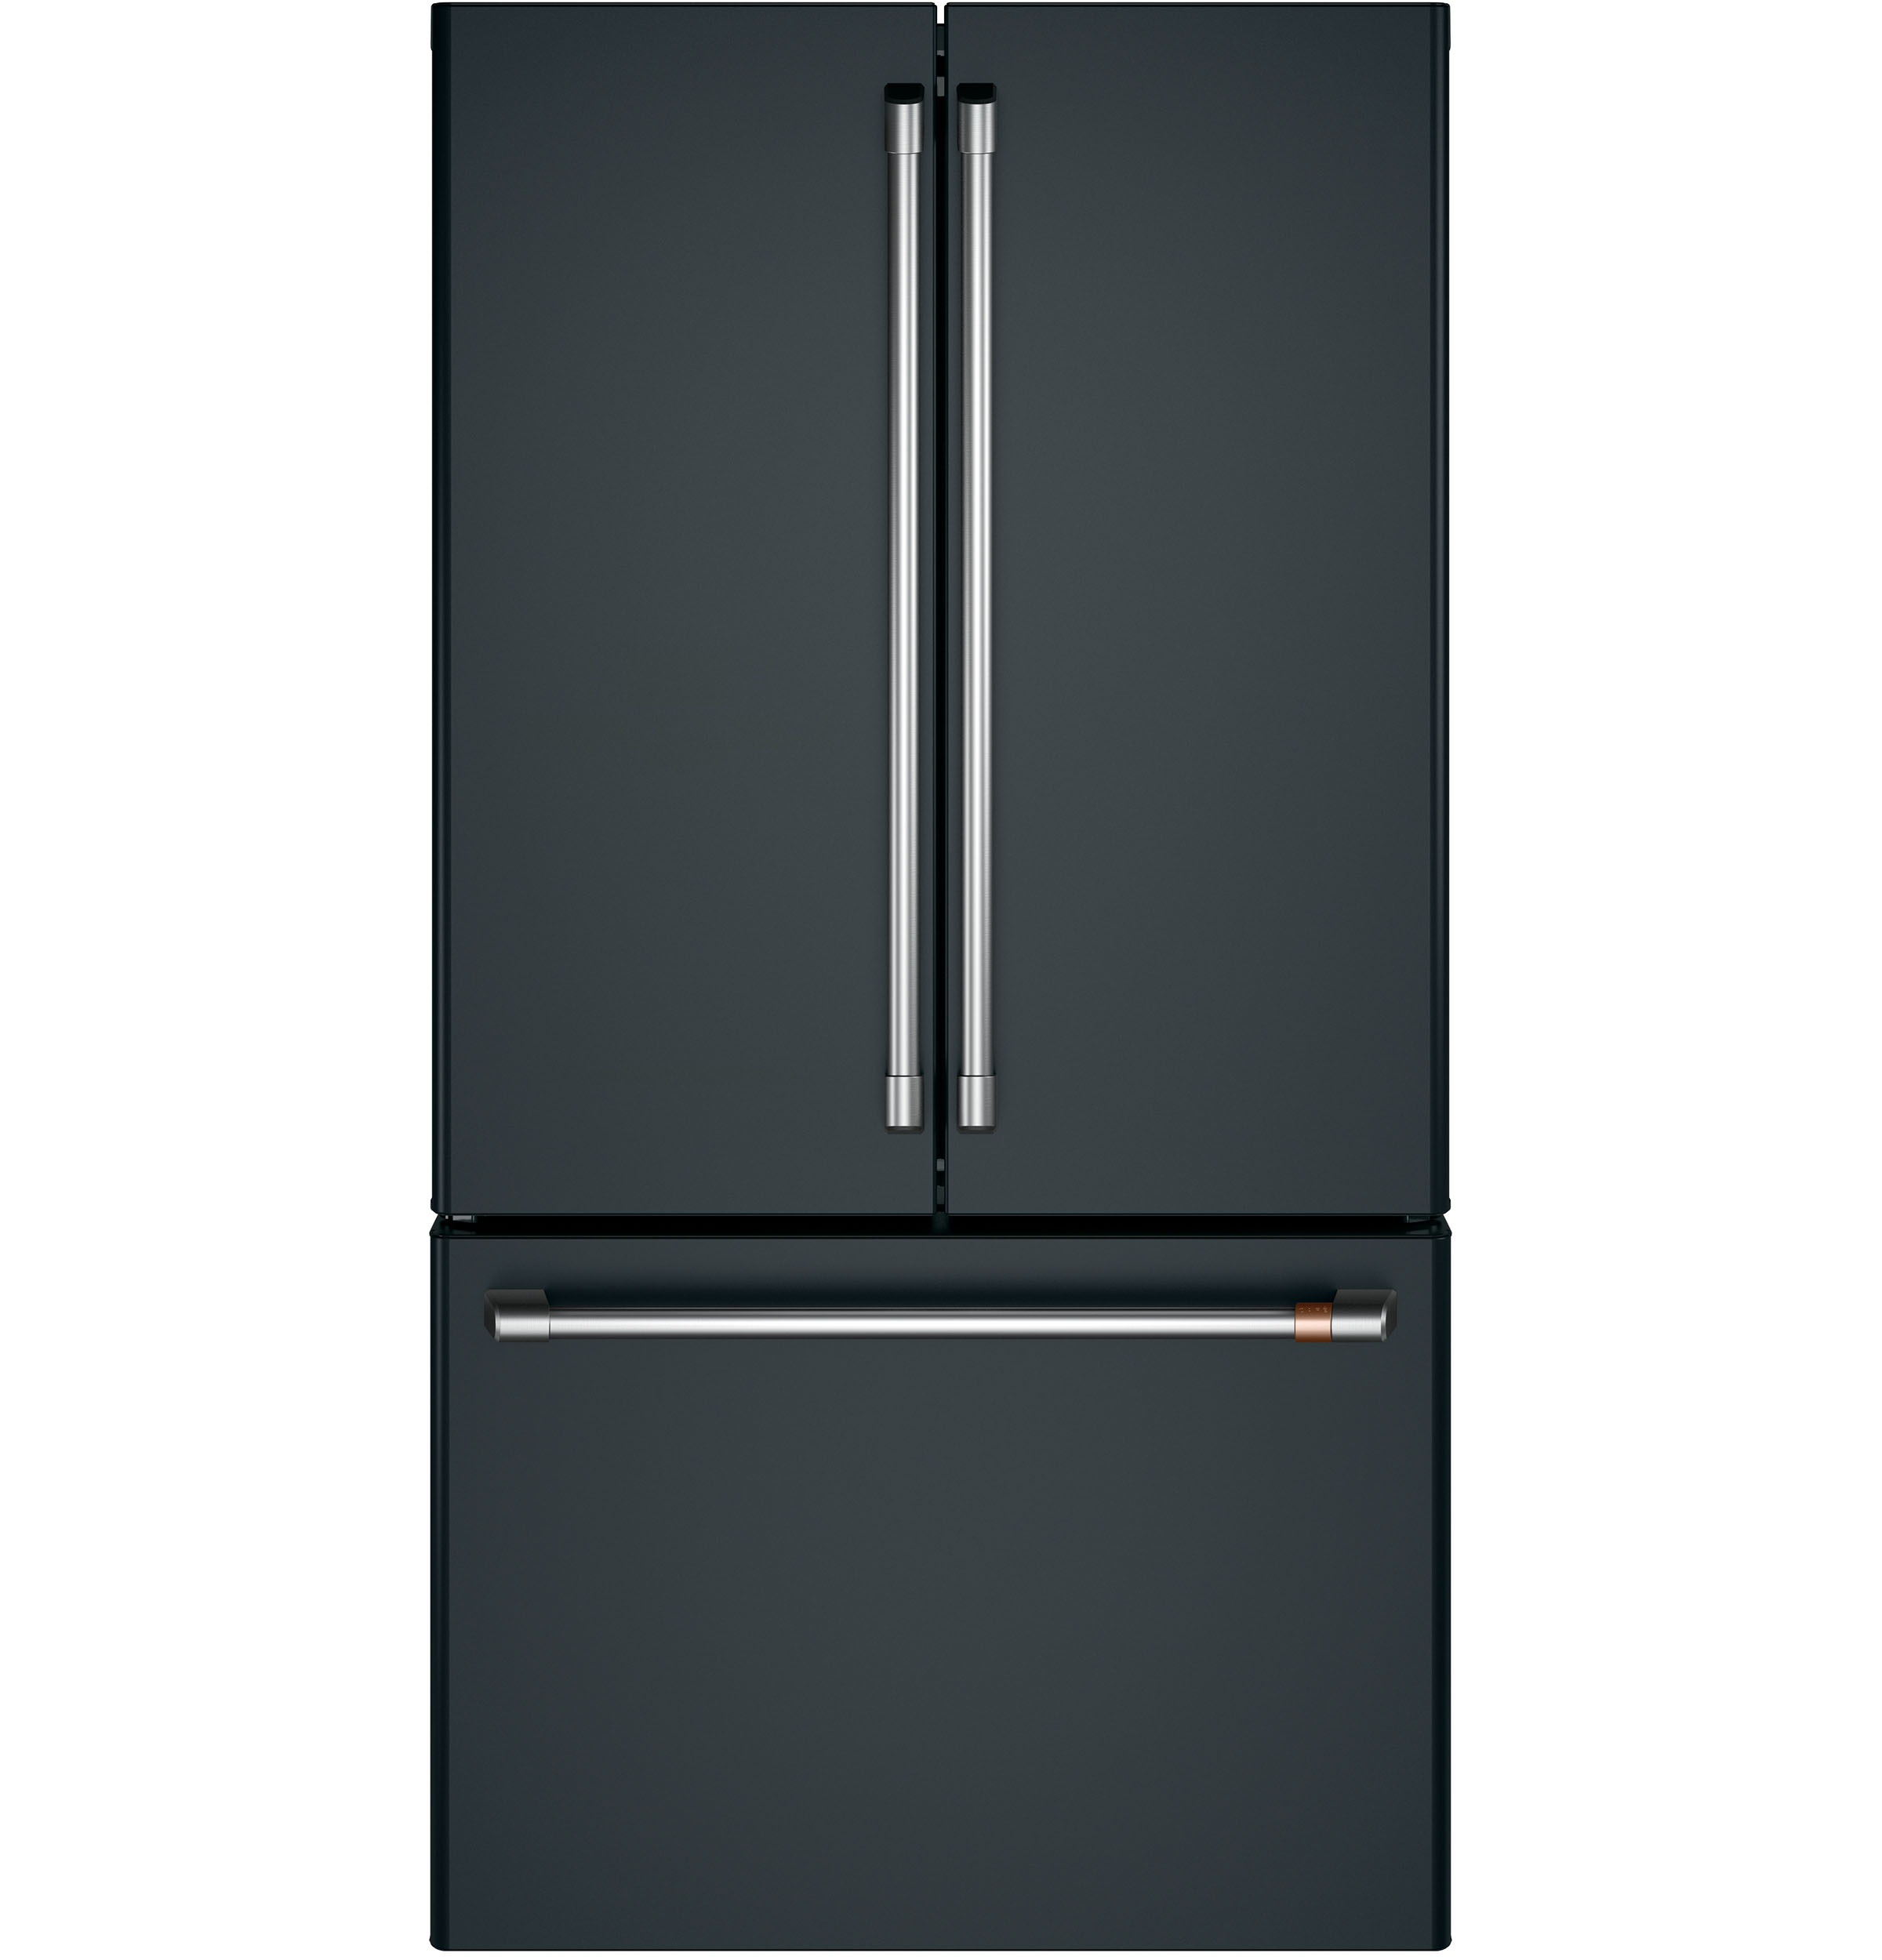 Café™ ENERGY STAR® 23.1 Cu. Ft. Counter-Depth French-Door Refrigerator